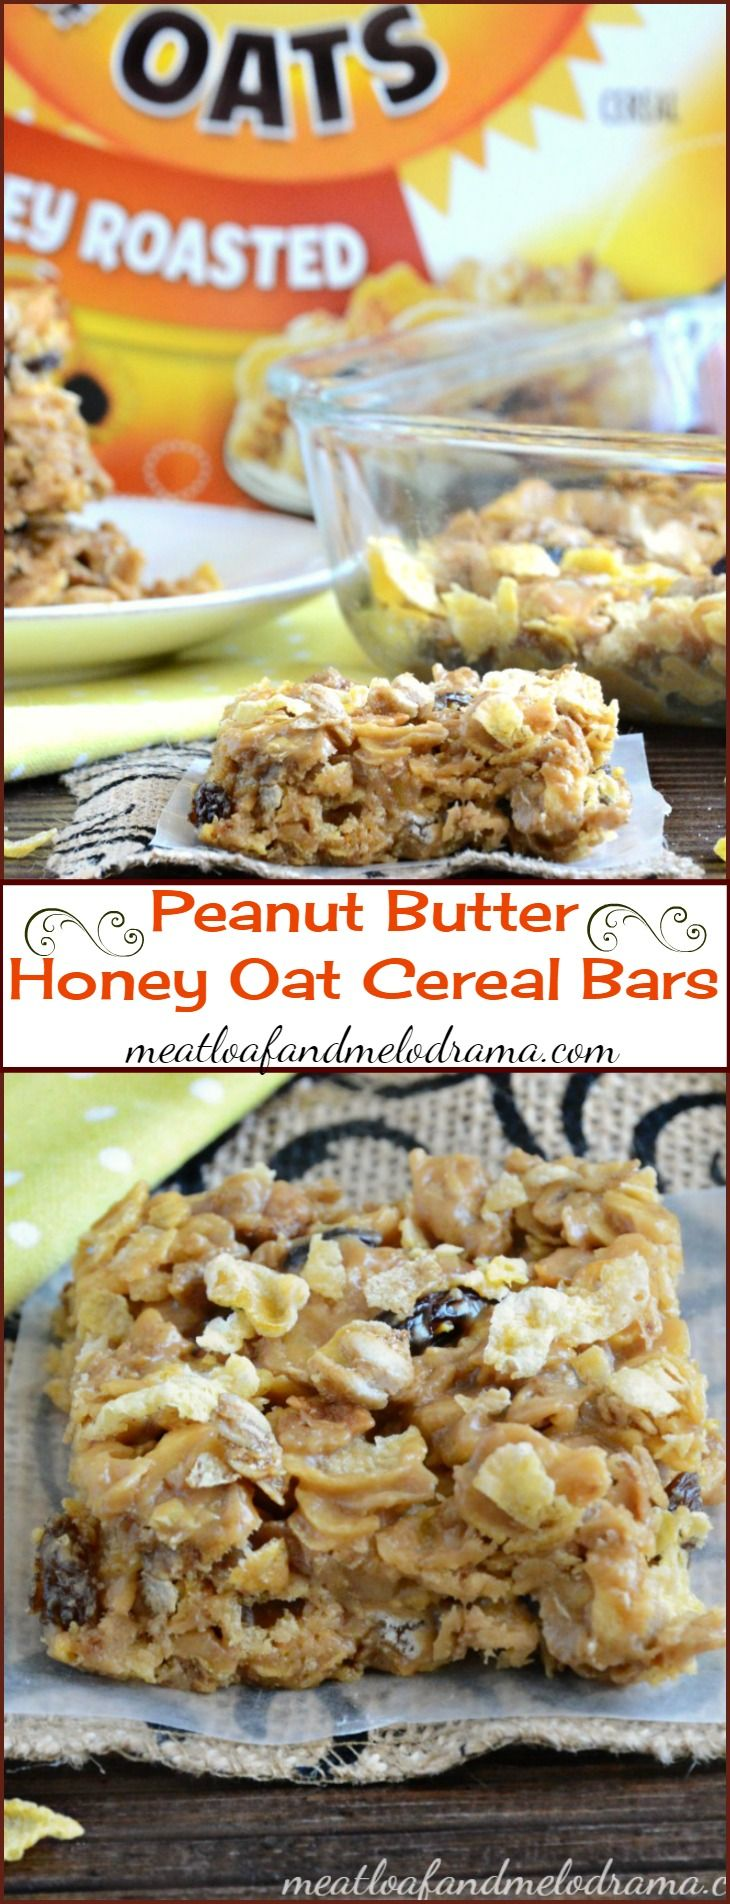 Peanut Butter Honey Oat Cereal Bars -- A quick and easy no bake treat or dessert made with Honey Bunches of Oats cereal and perfect for a grab and go breakfast or or after school snack. AD